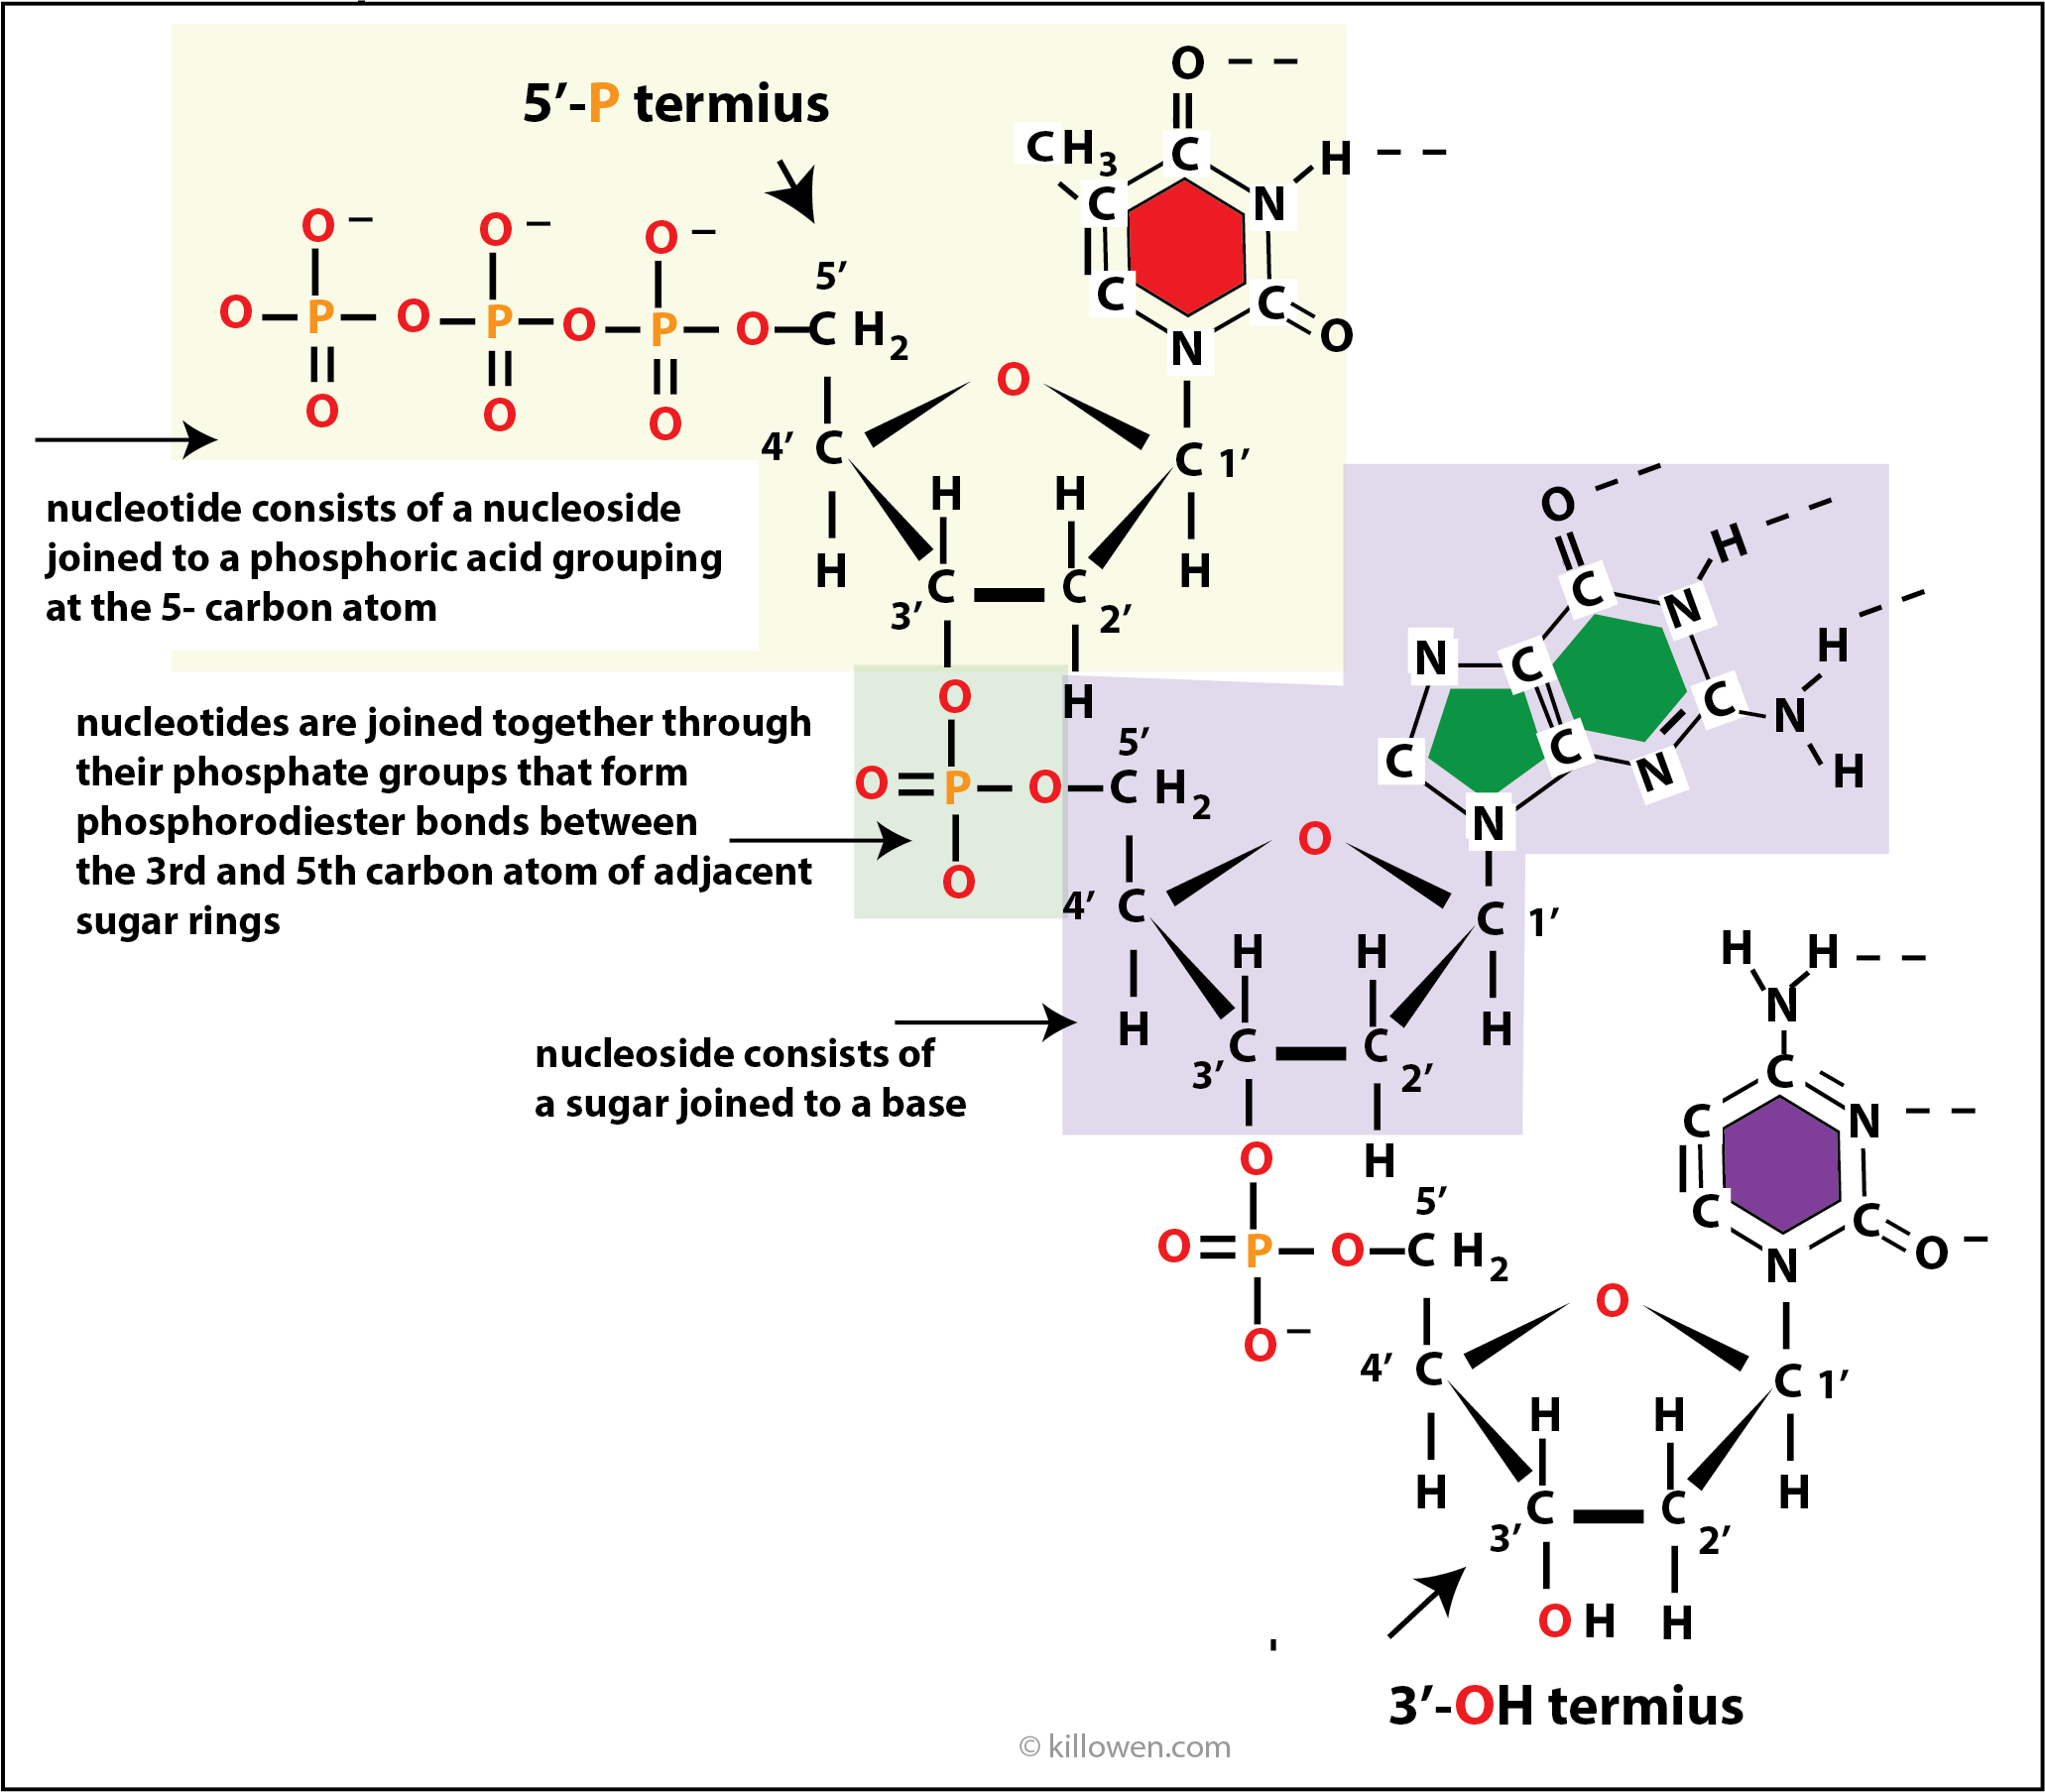 nucleotides and nucleosides